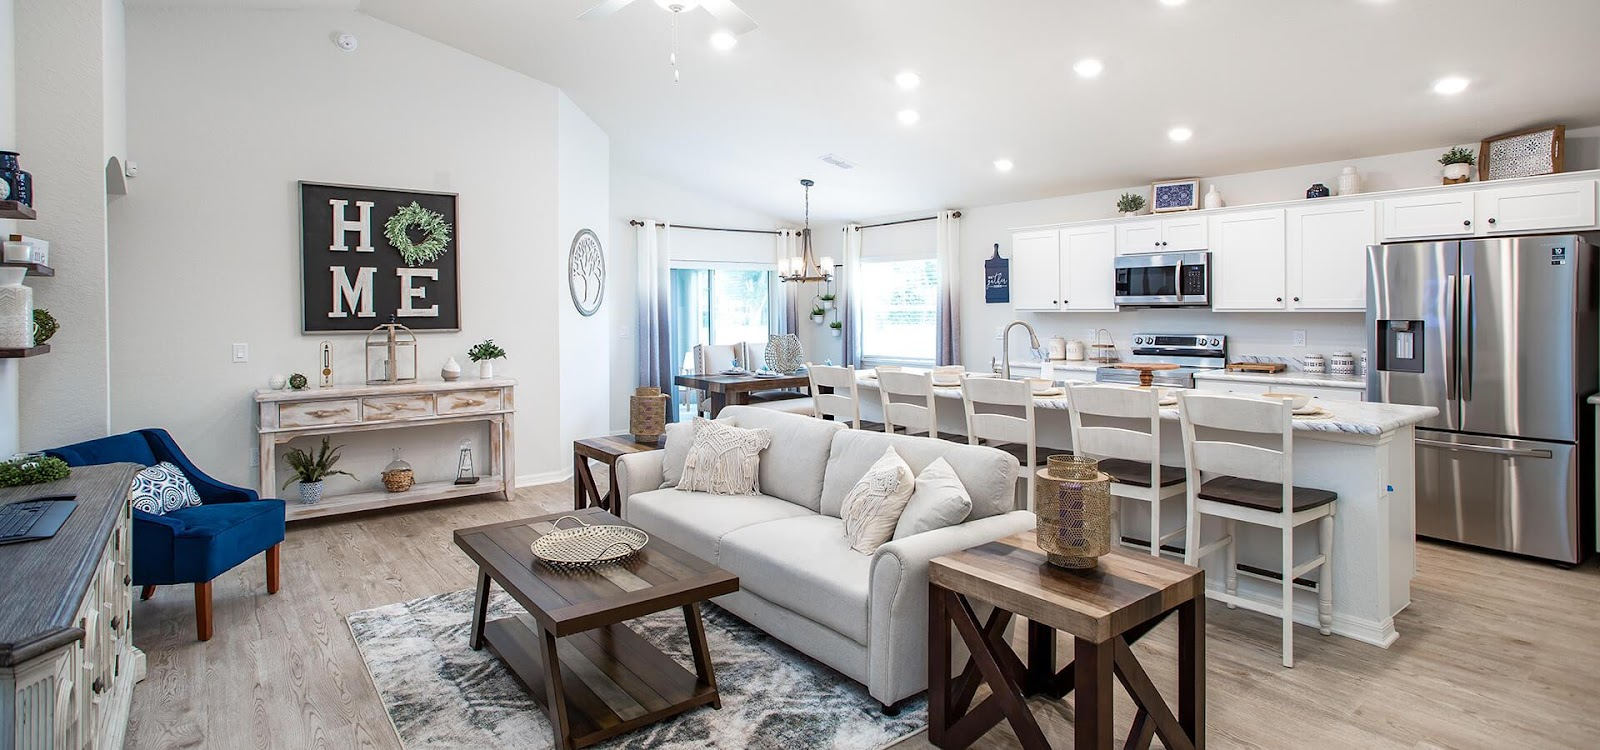 Gathering room in the new model home in Eagle Lake, FL